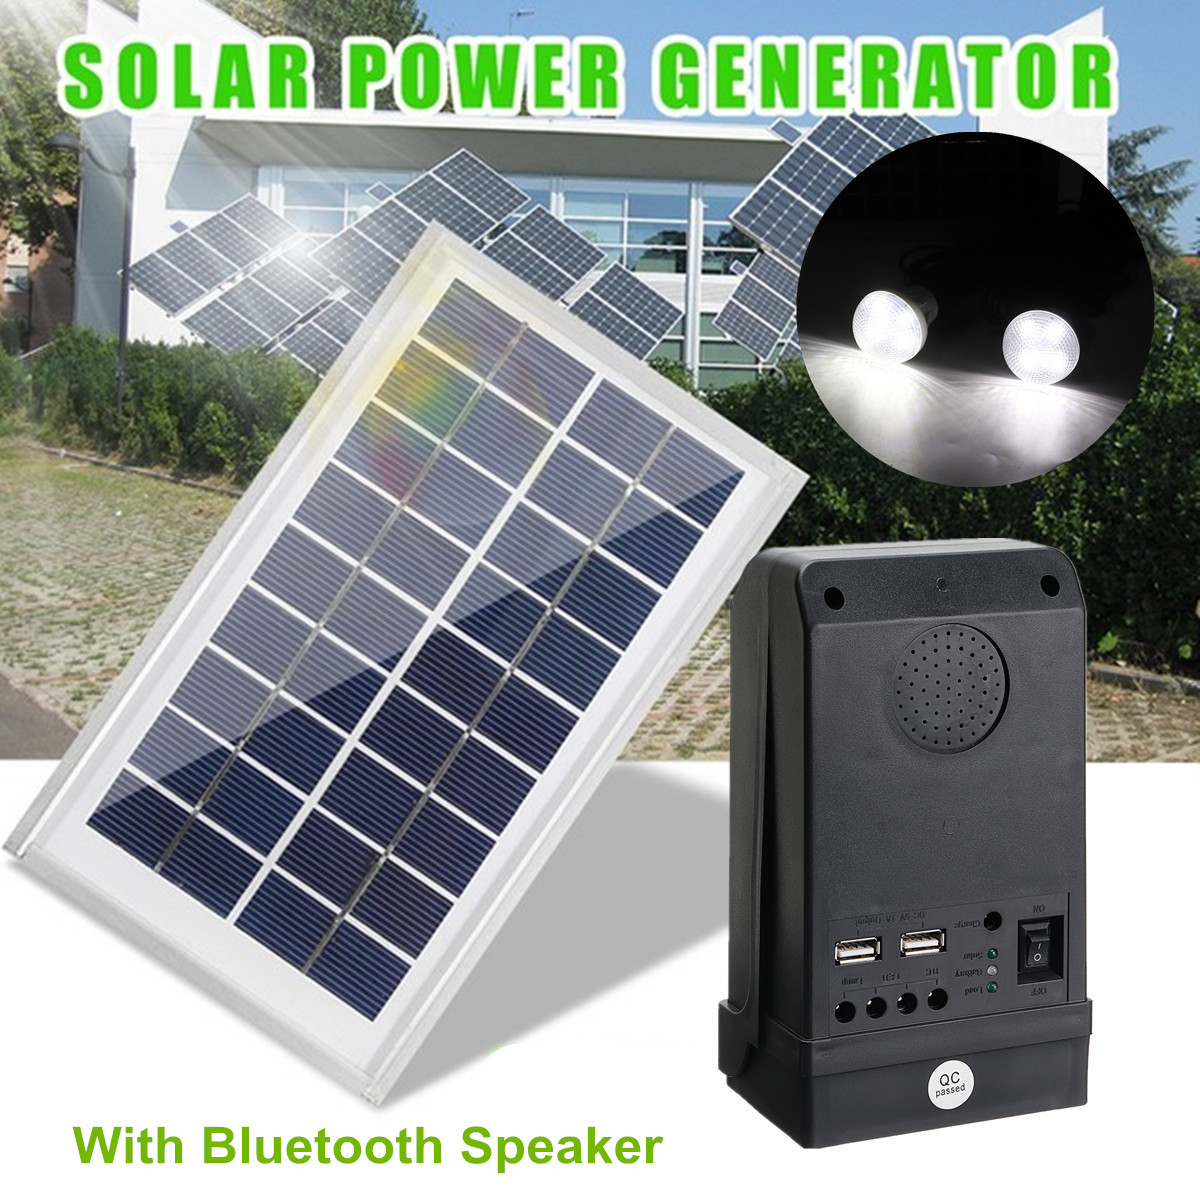 Solar Panel Power Generator LED Light 5V 2A USB Charger System with Bluetooth Speaker Reusable Durable Camping Large Capacity diy 5v 2a voltage regulator junction box solar panel charger special kit